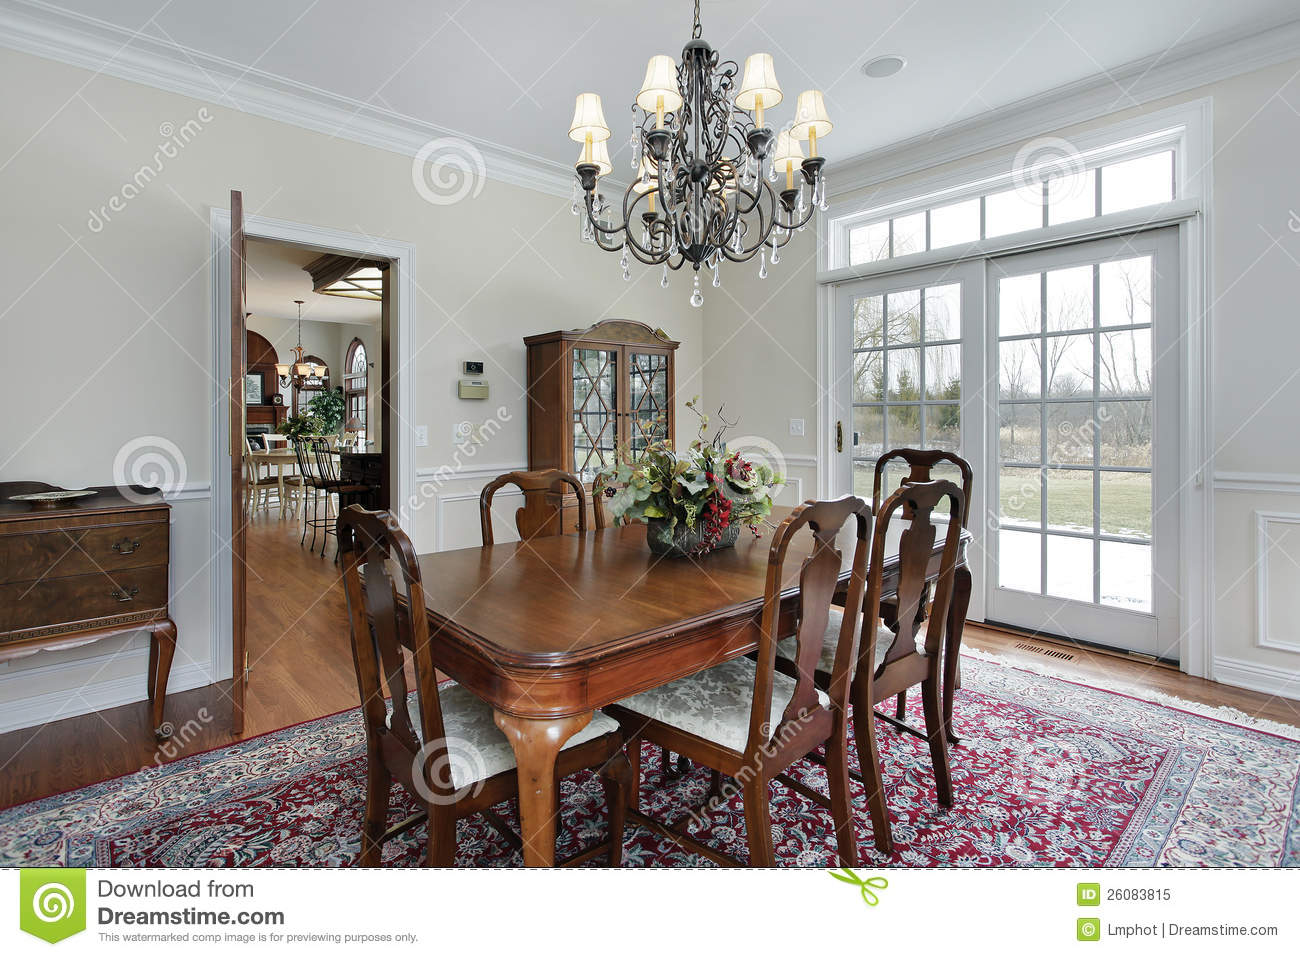 Dining Room In Suburban Home Royalty Free Stock Photo Image 26083815